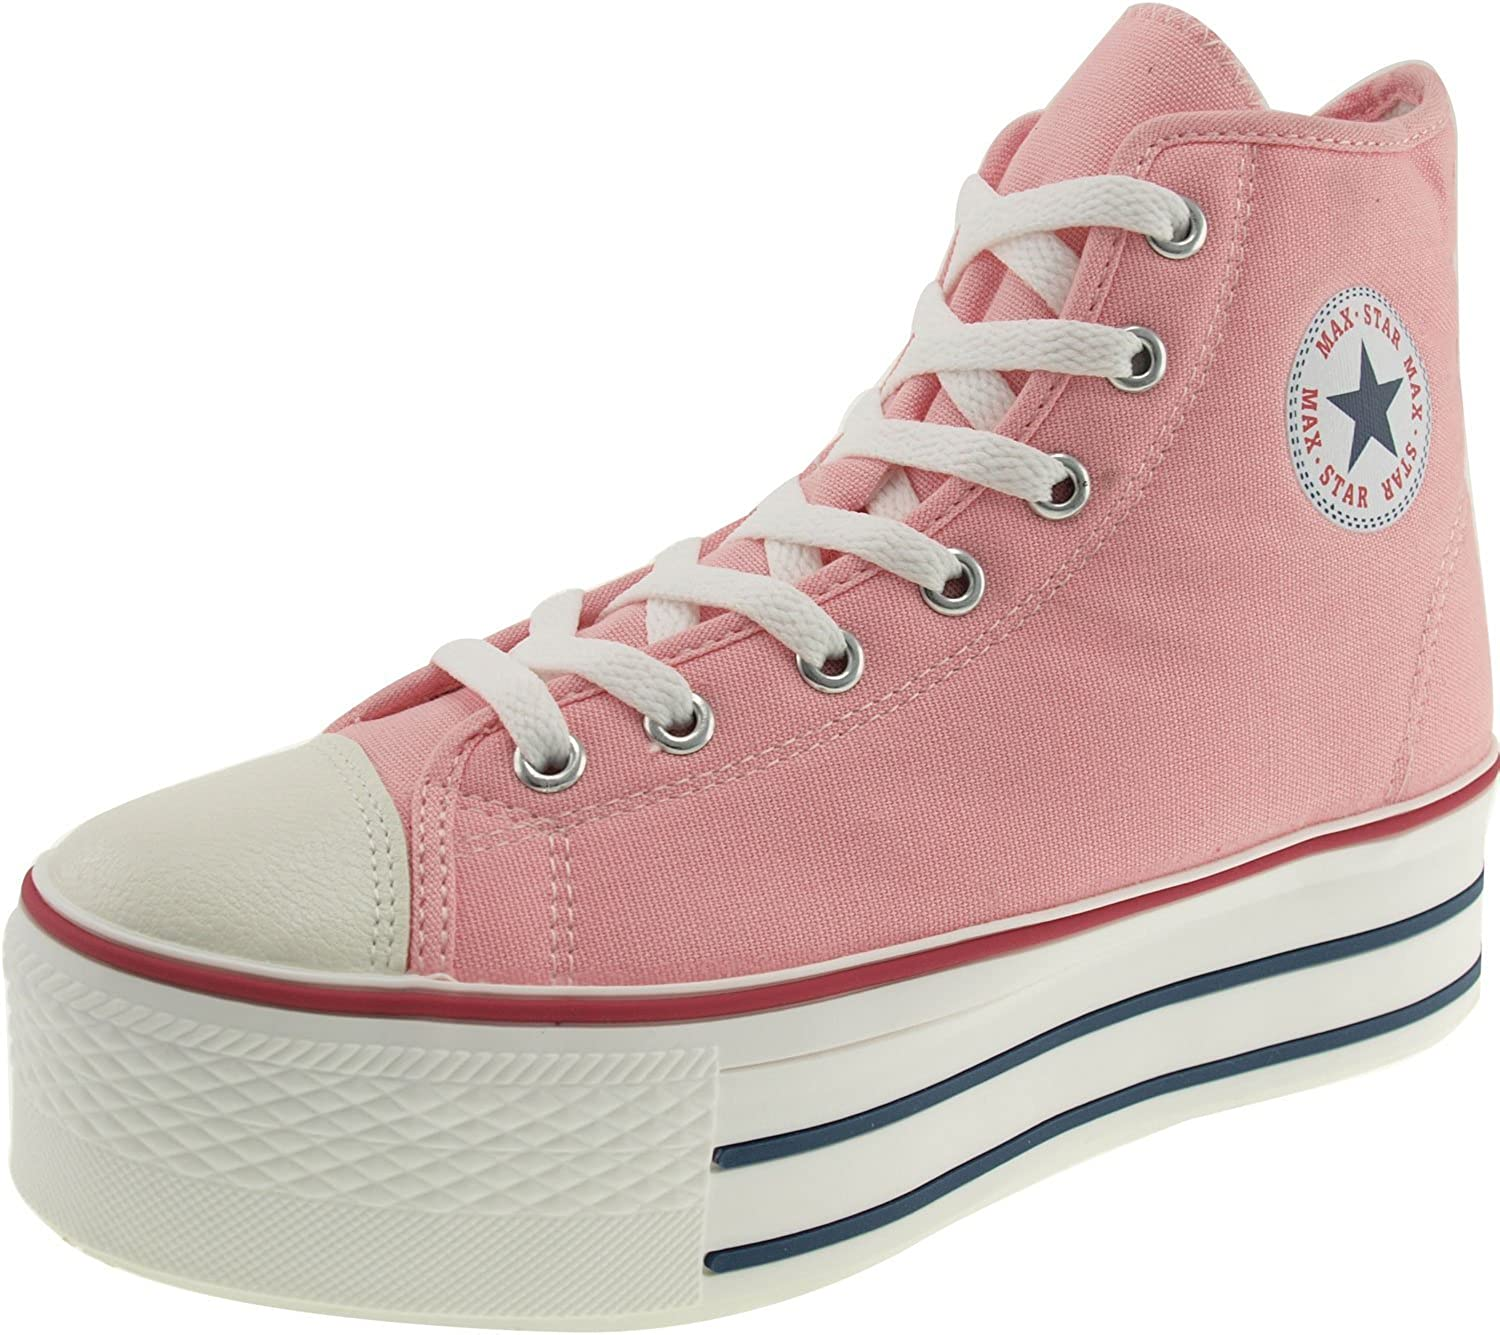 Maxstar High-top Zipper Platform Canvas Sneakers shoes Pink 10 B(M) US Womens